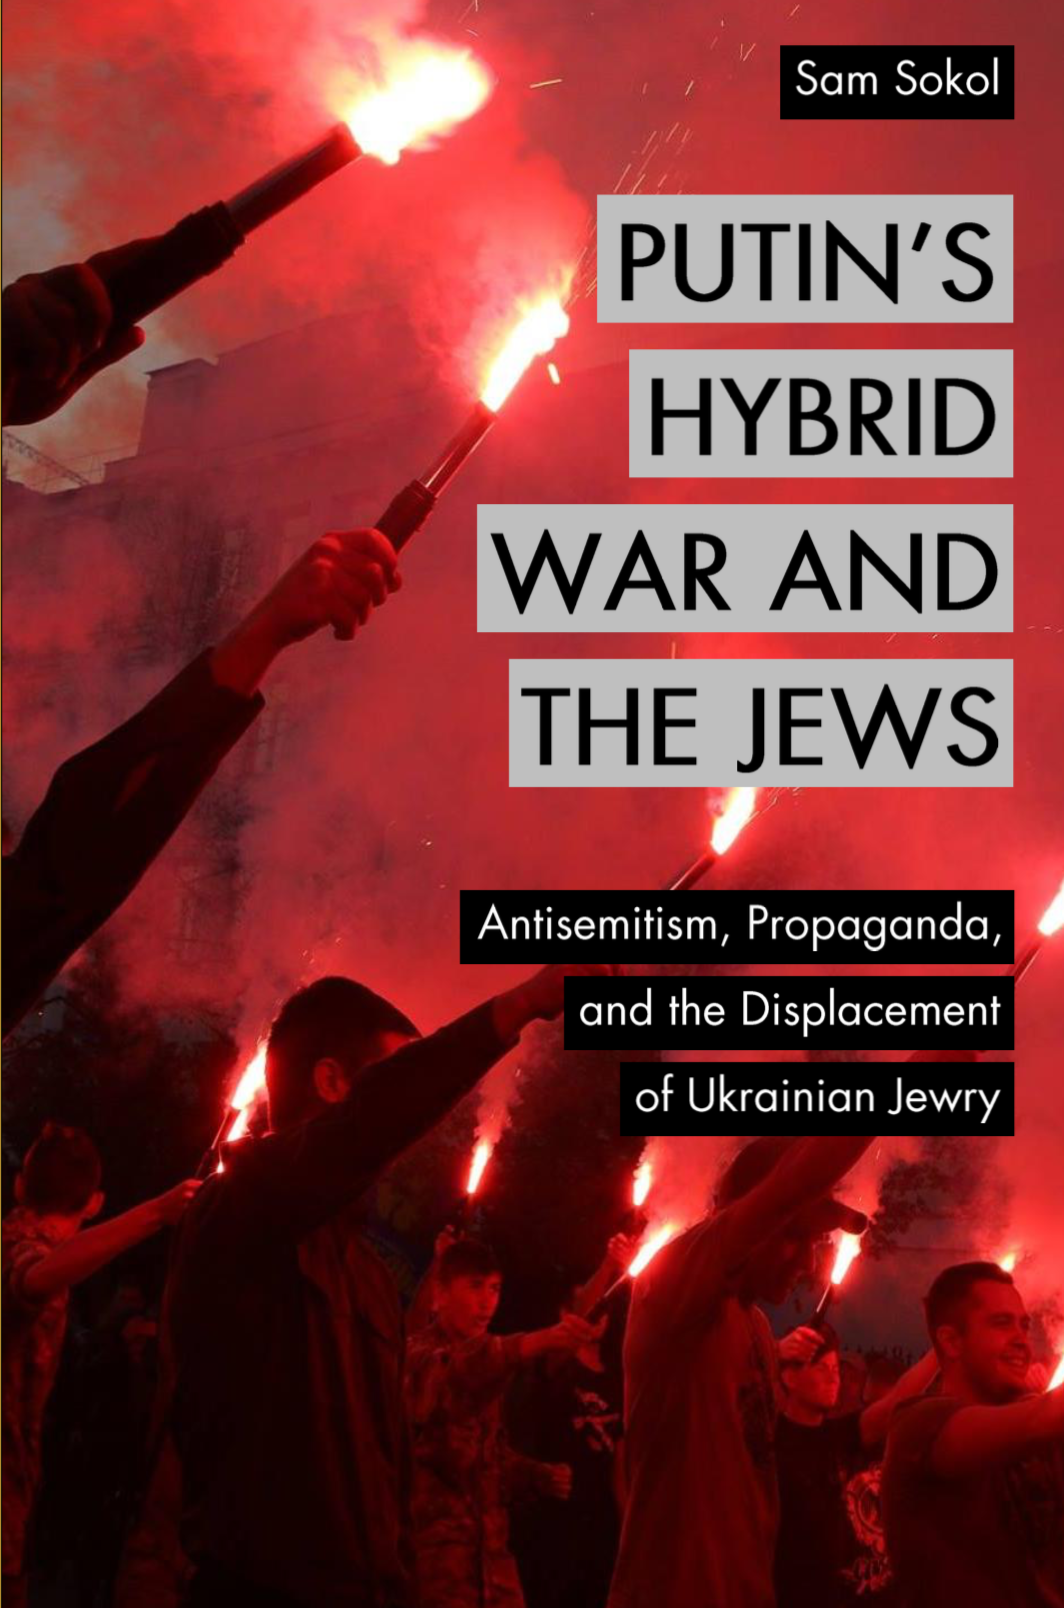 Putin's Hybrid War and the Jews: Antisemitism, Propaganda, and the Displacement of Ukrainian Jewry by Sam Sokol